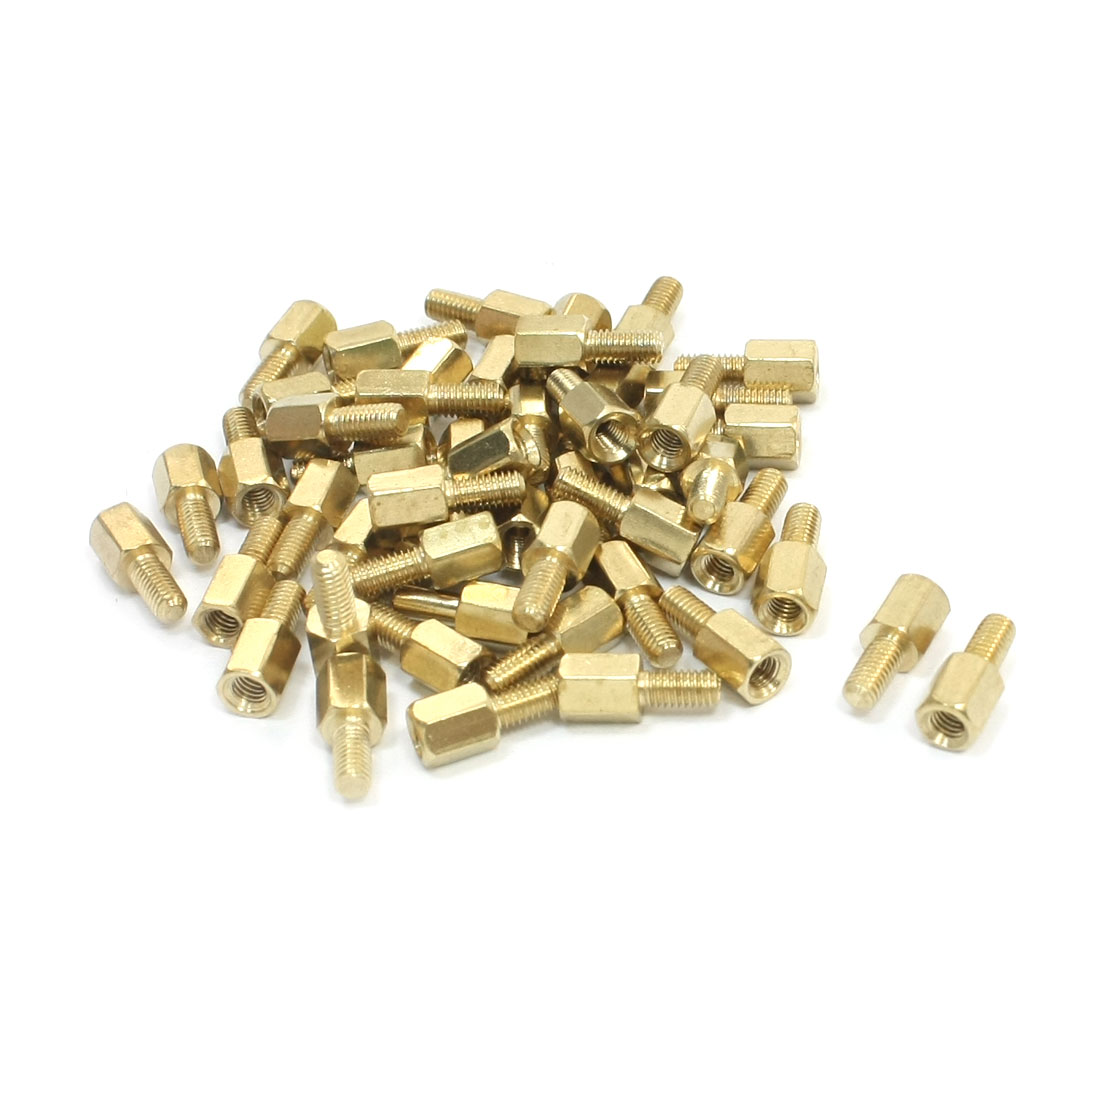 50 Pcs M3 x 6mm x 12mm Male to Female Thread Gold Tone Brass Pillar PCB Hexagon Standoff Spacer